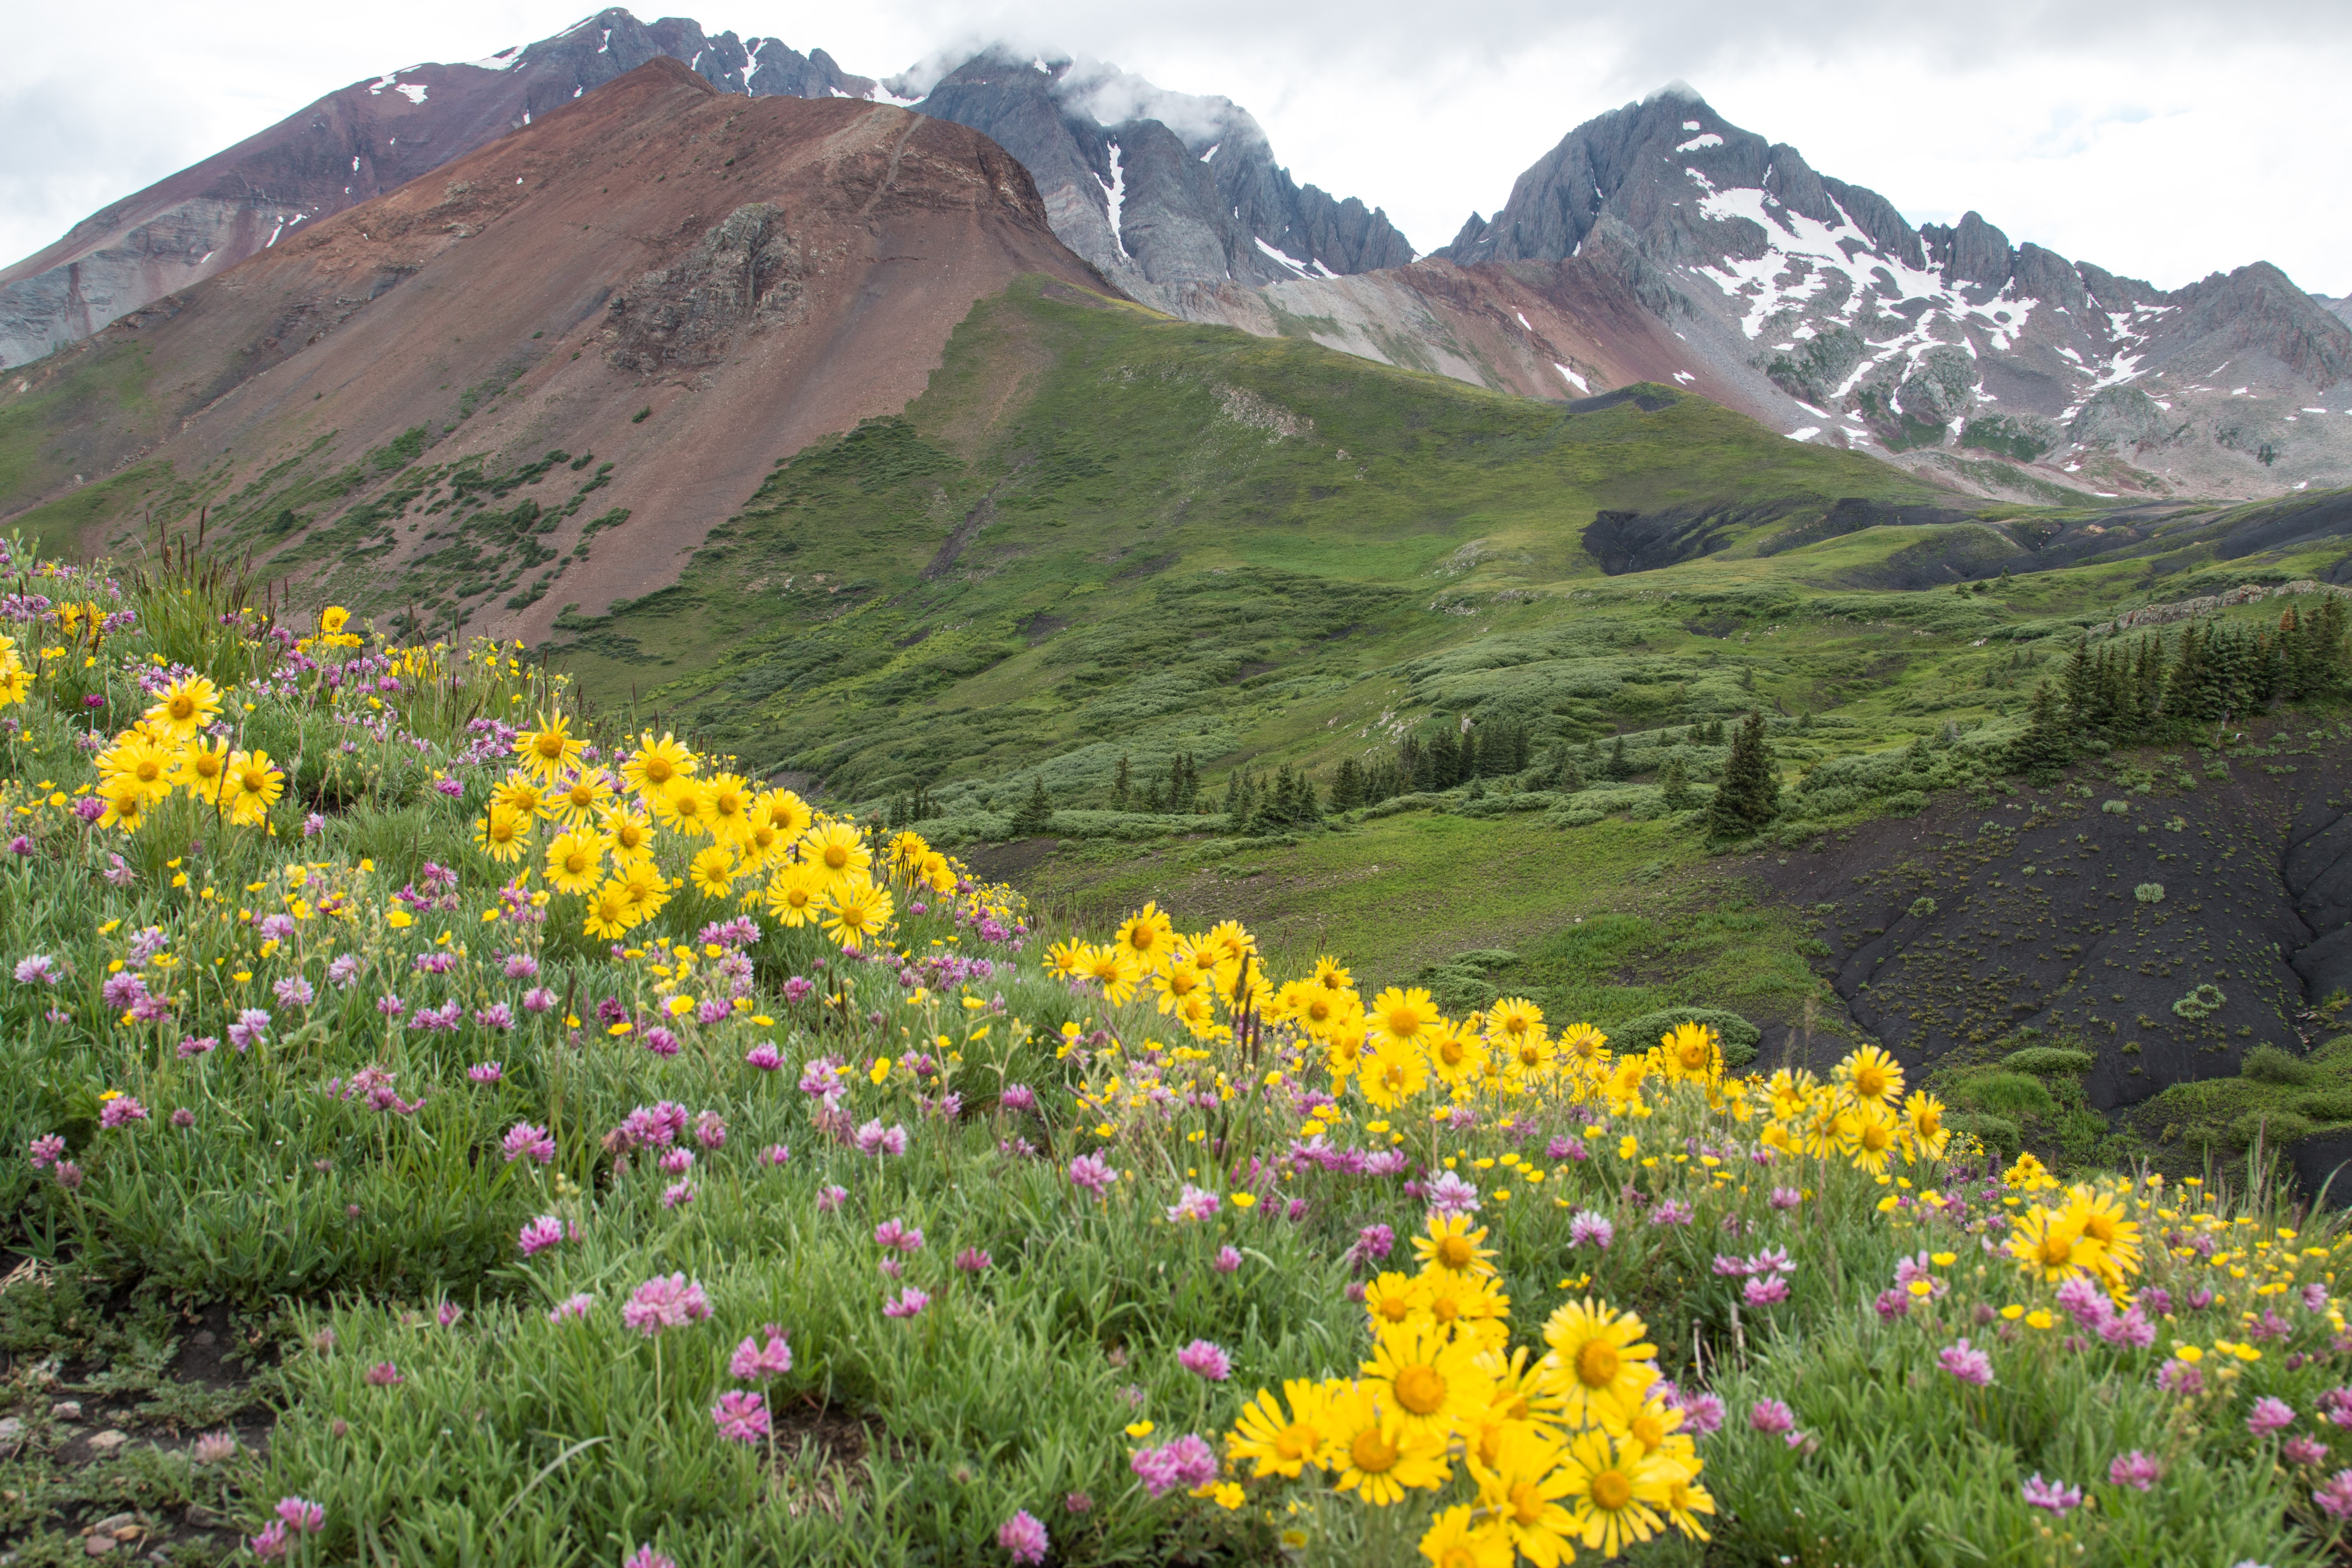 <p>Wildflowers on the trail to Cross Mountain, between Telluride and Rico. The 7.2-mile hike is strenuous, but rewards those who complete it with solitude and rare blooms.</p>